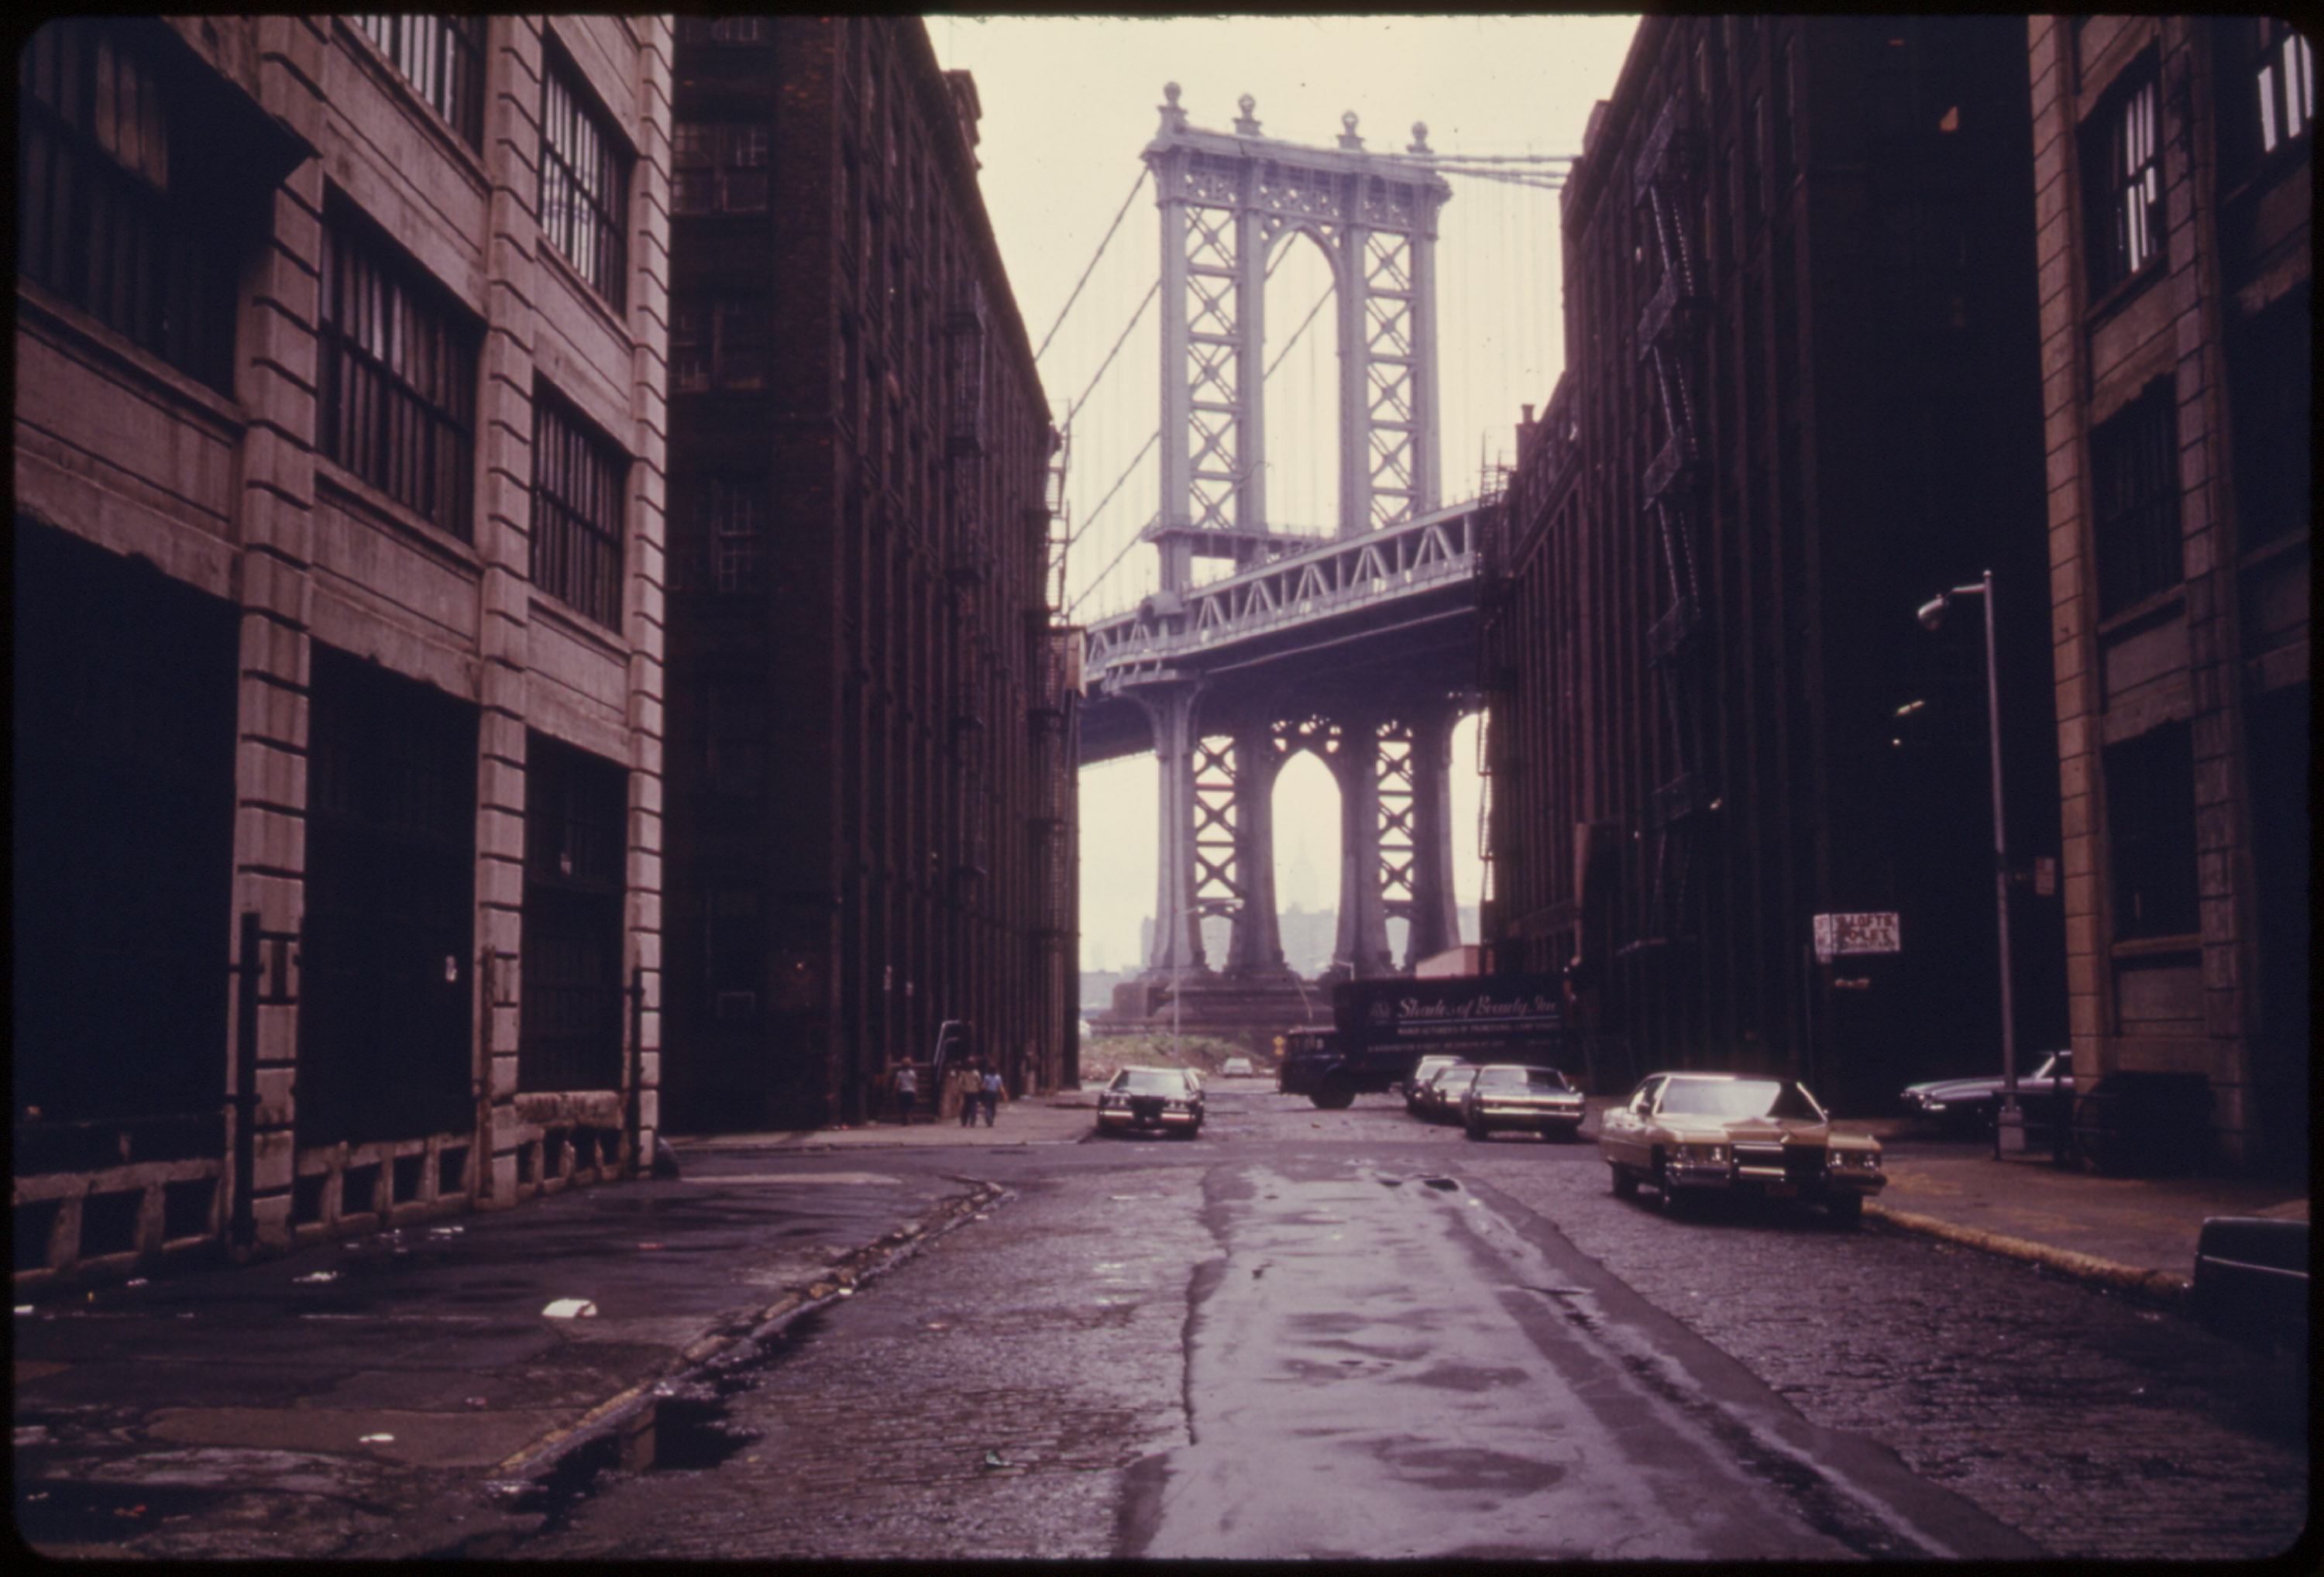 Illustration : Danny Lyon, « Manhattan Bridge Tower in Brooklyn, New York City, Framed through Nearby Buildings », 1974, U.S. National Archives.